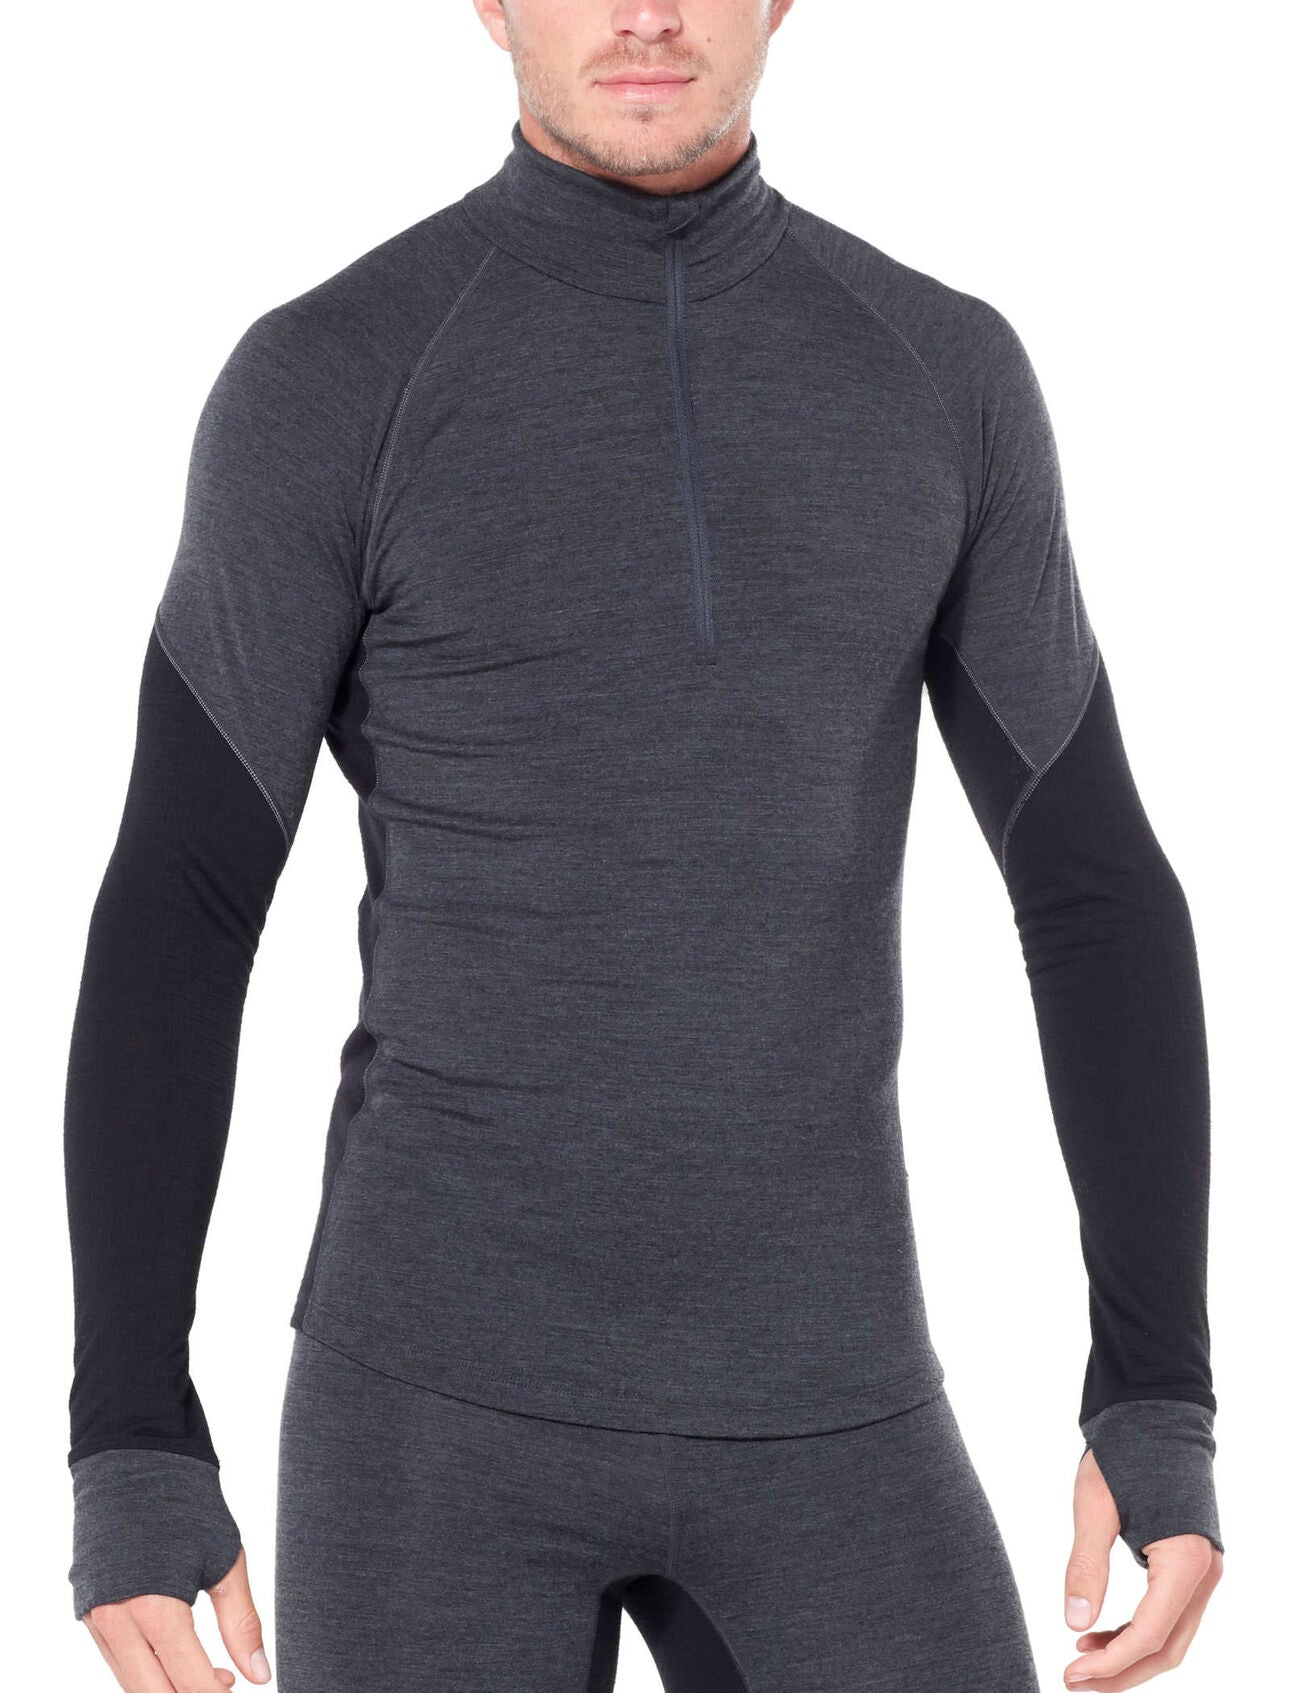 Icebreaker 260 Zone LS Half Zip (Men's) Jet Heather Black W20 - Find Your Feet Australia Tasmania Hobart Launceston